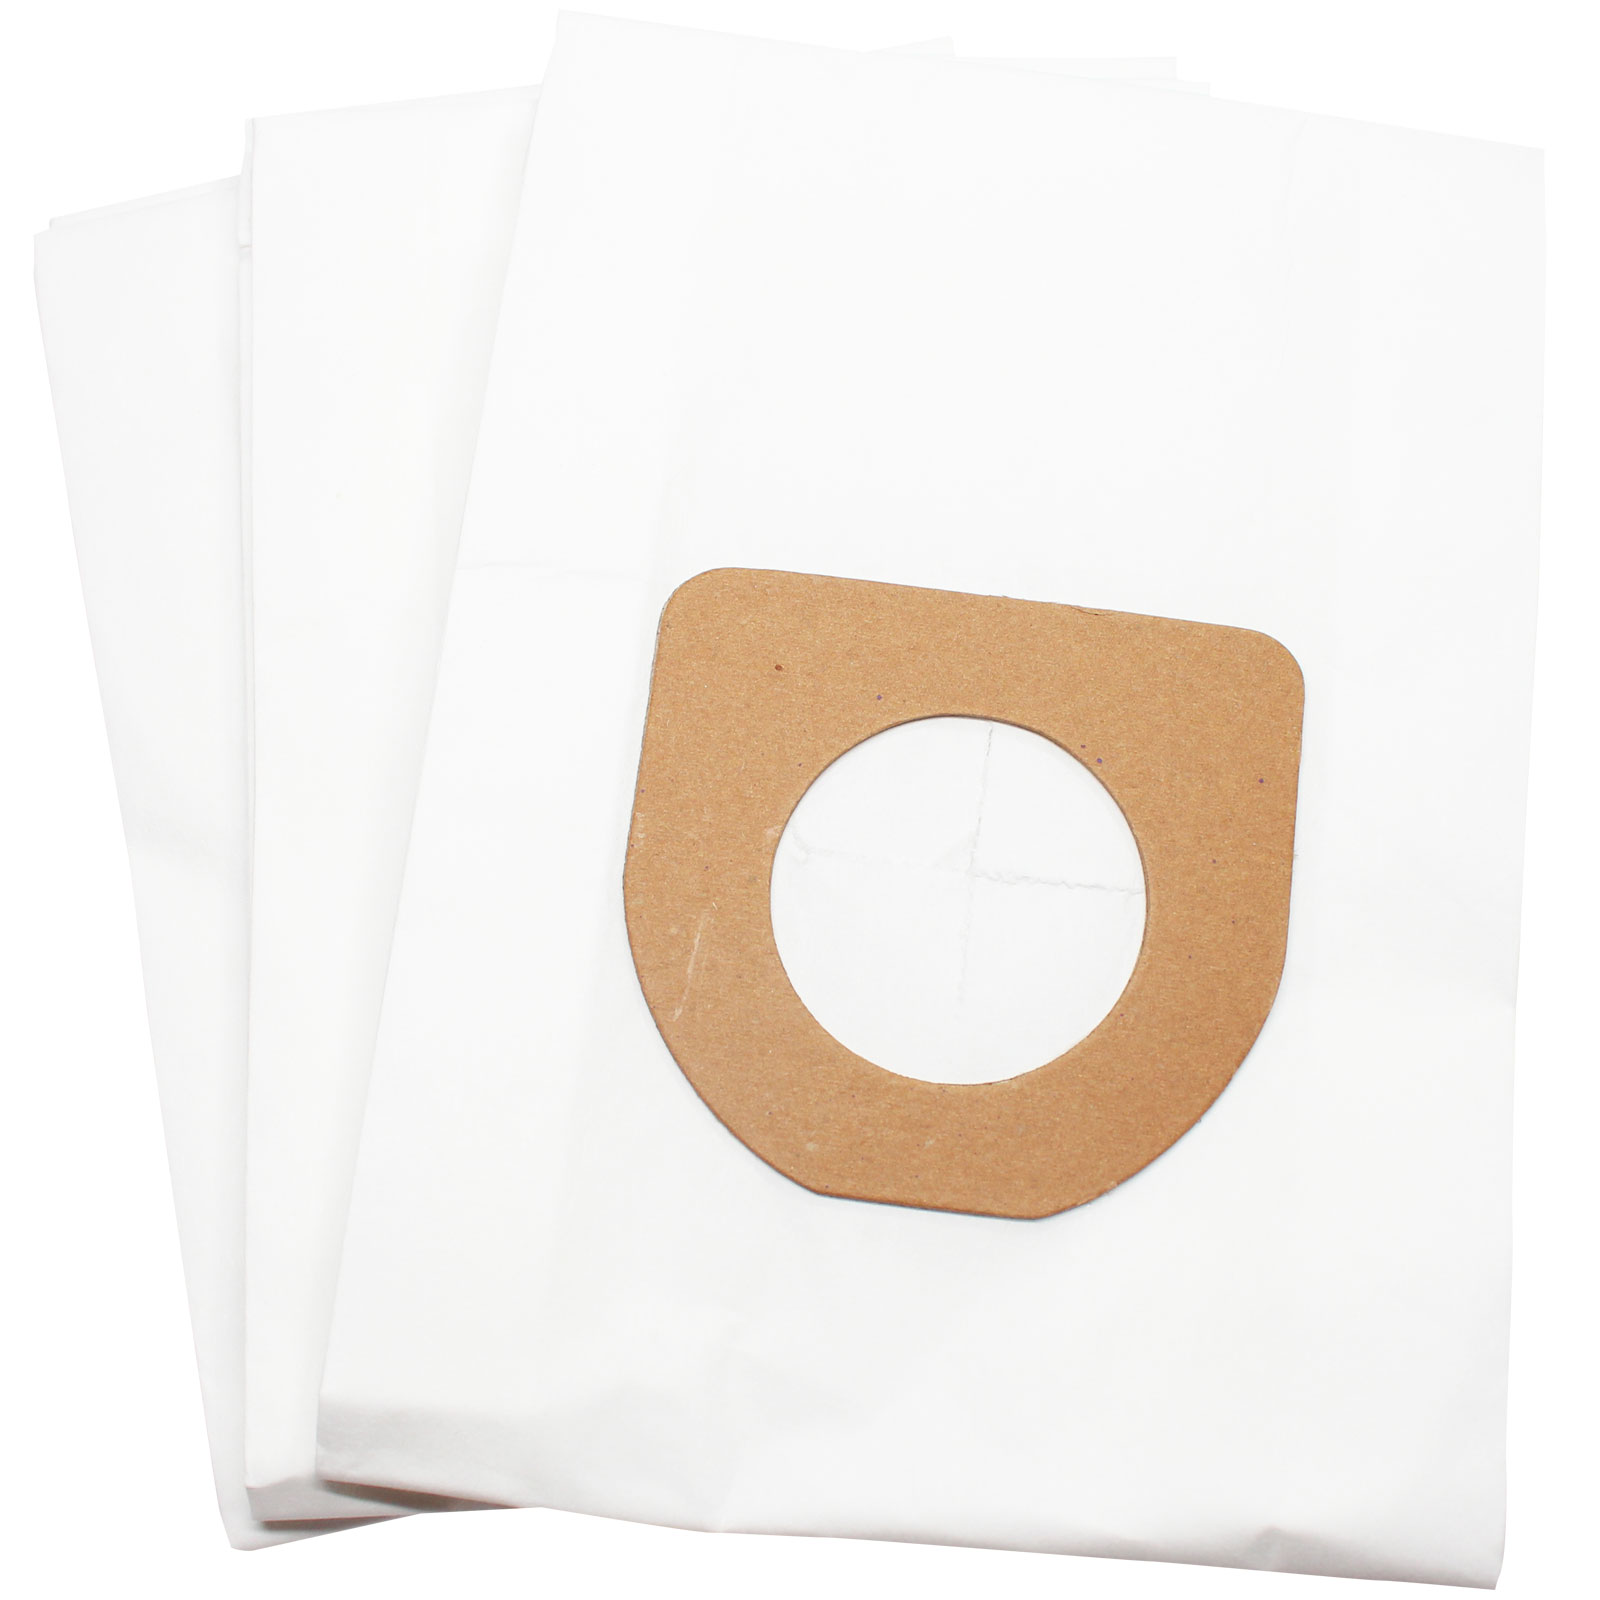 3 Replacement Hoover Caddy Vac Vacuum Bags - Compatible Hoover 4010100Z, Type Z HEPA Vacuum Bags - image 1 of 4